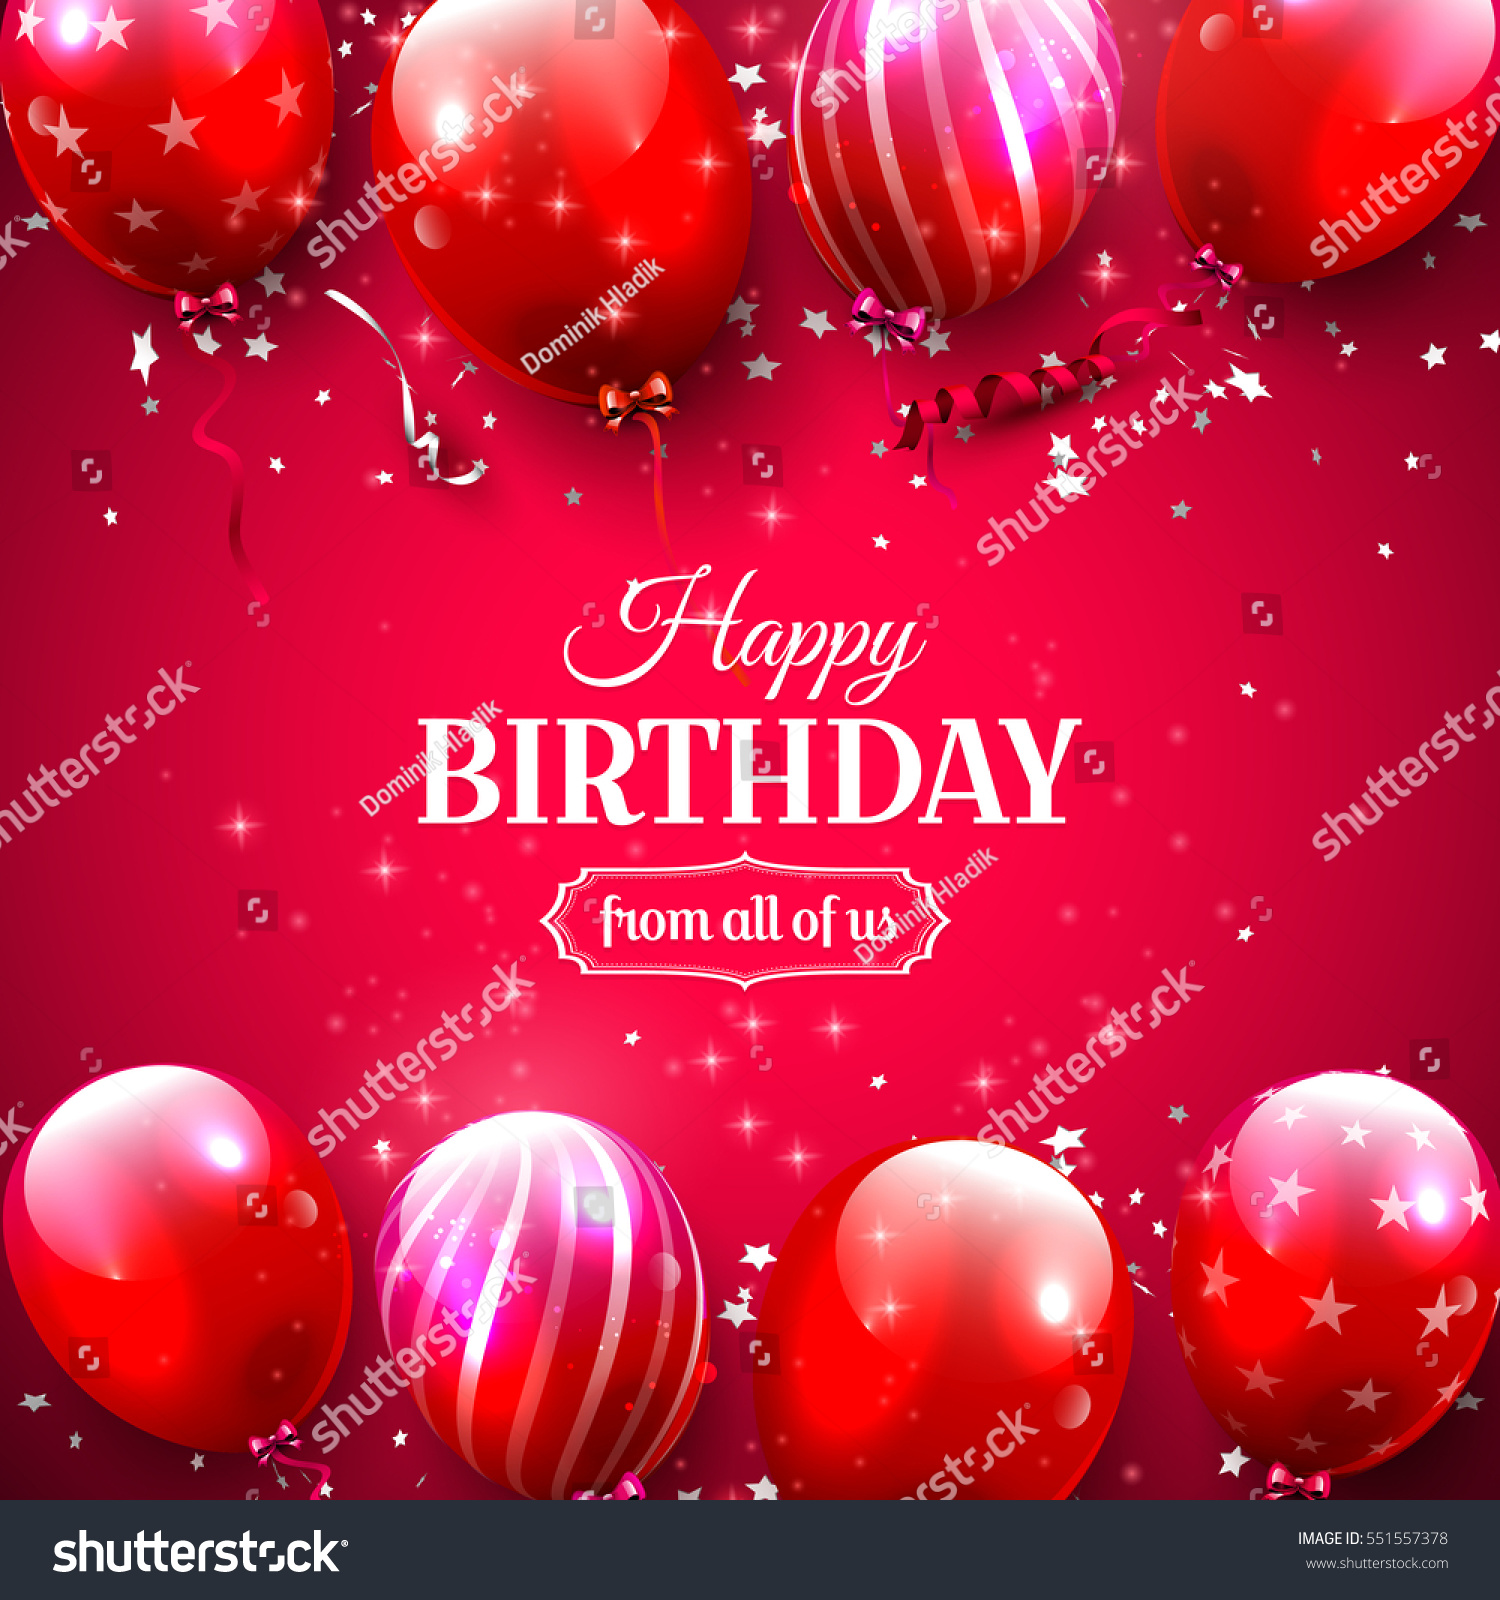 Luxury Birthday Greeting Card Red Balloons Stock Vector Royalty